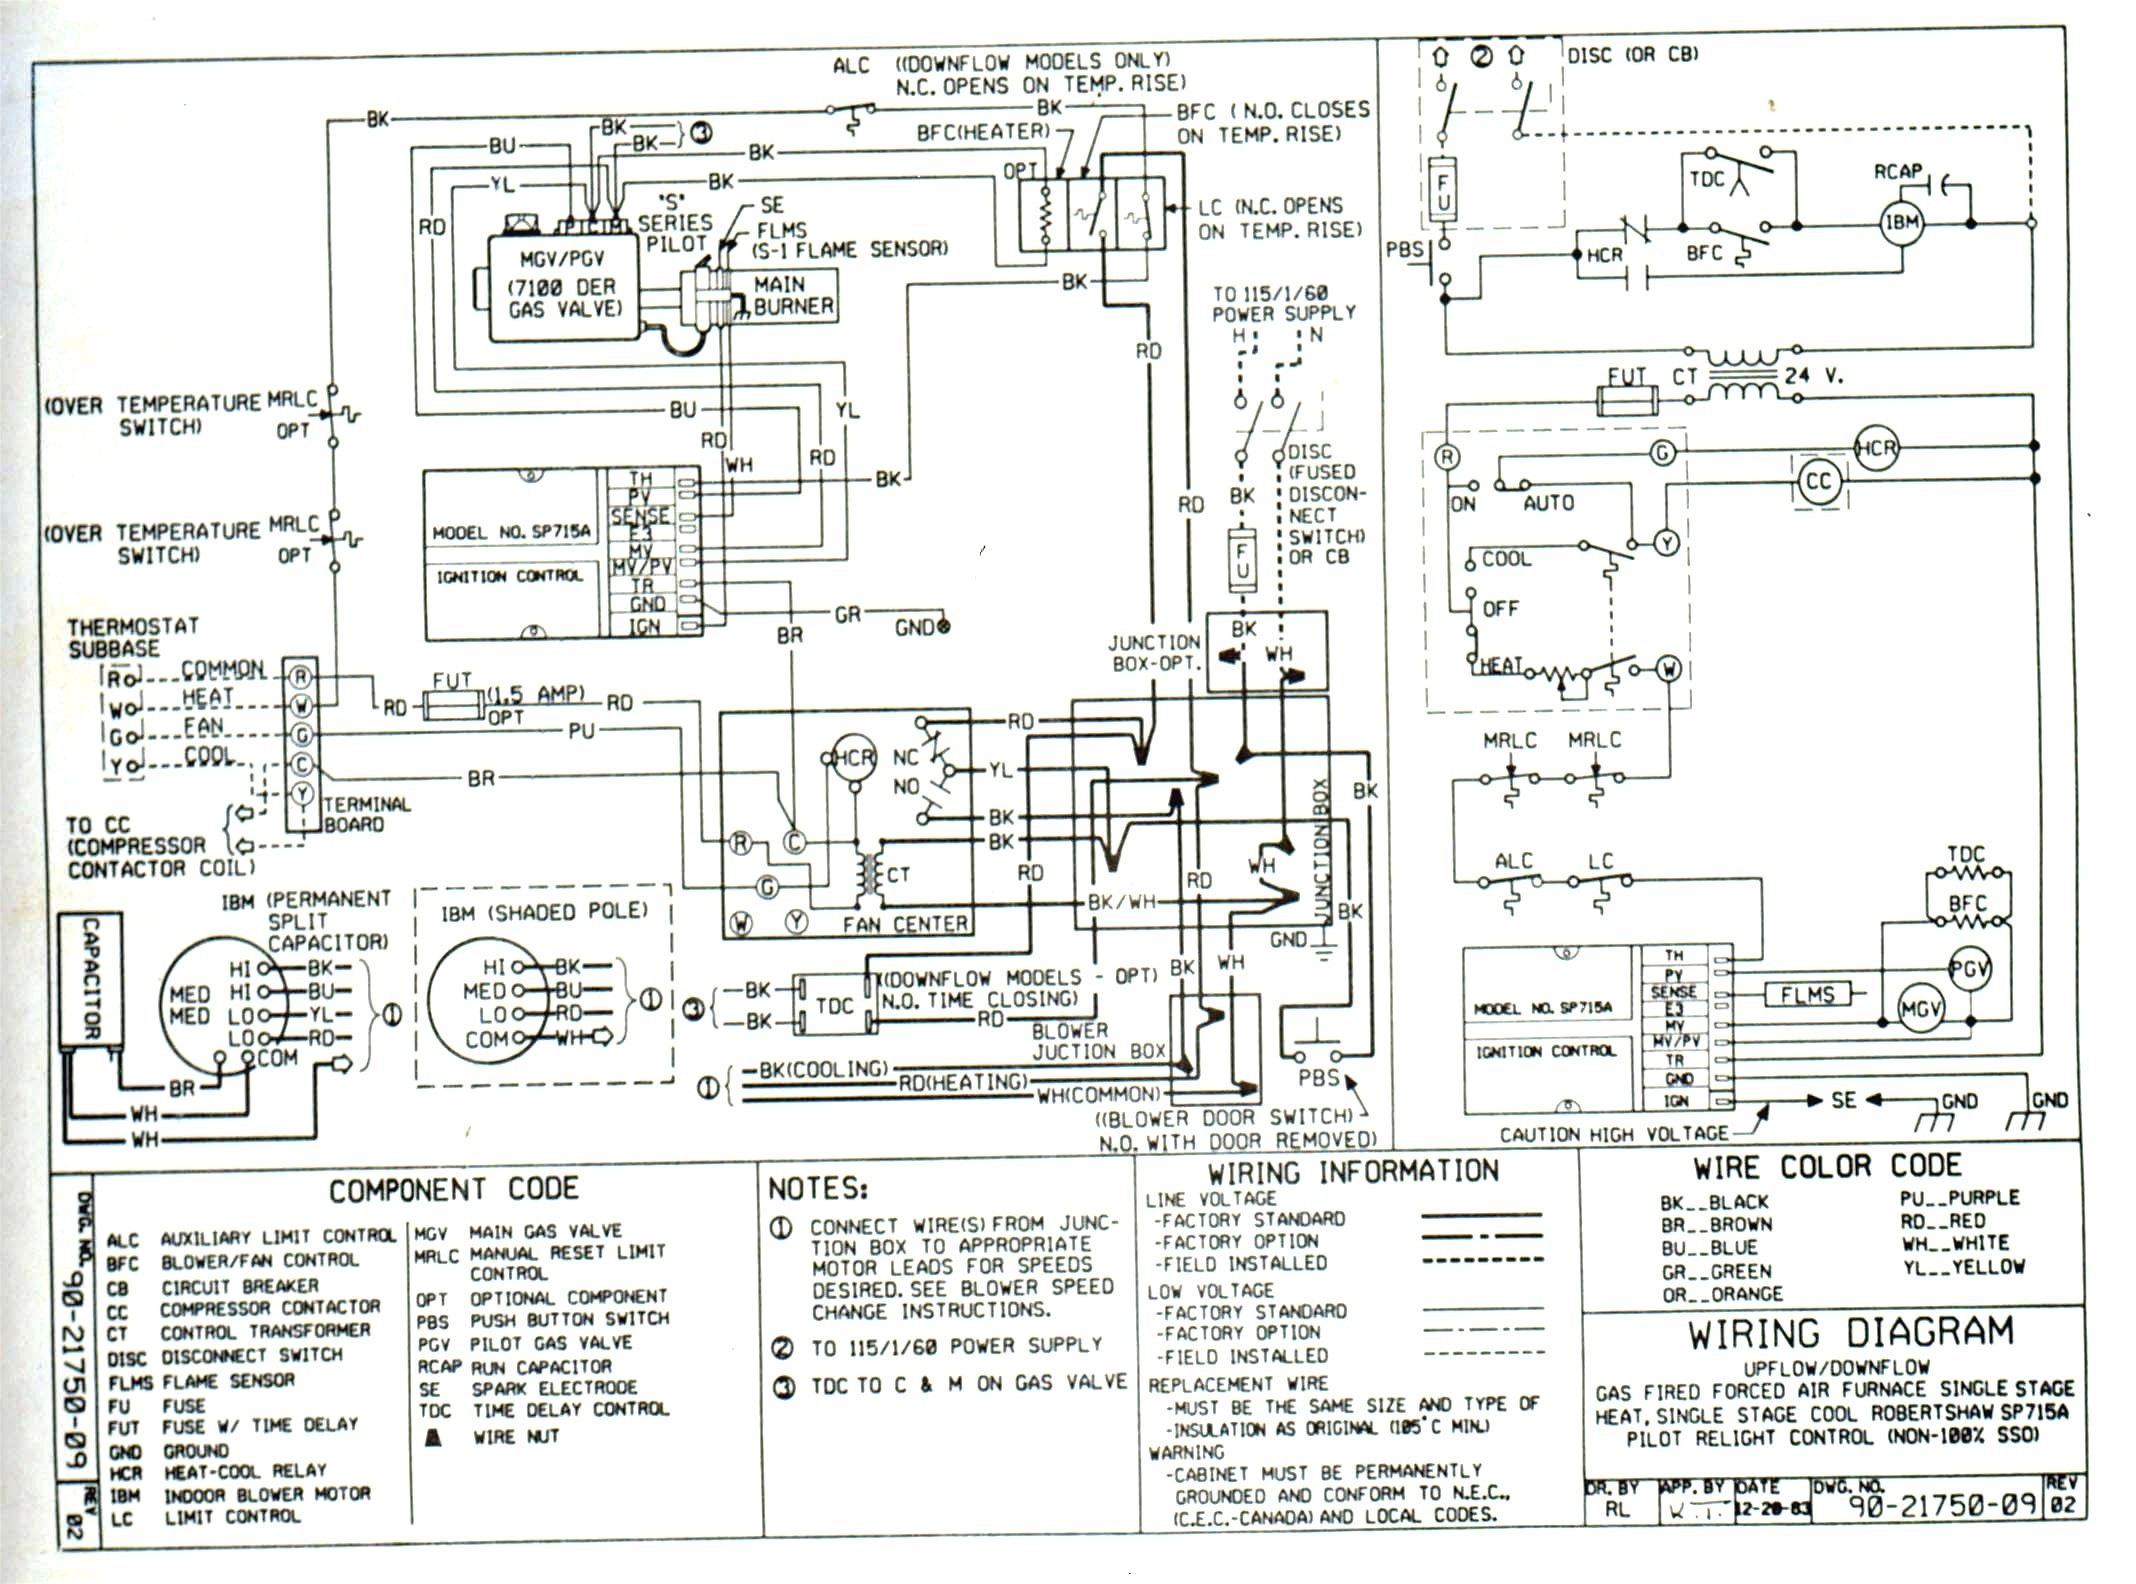 Heat pump wiring diagram collection wiring diagram sample heat pump wiring diagram download heat pump wiring diagram best heat pump wiring diagram schematic download wiring diagram cheapraybanclubmaster Images